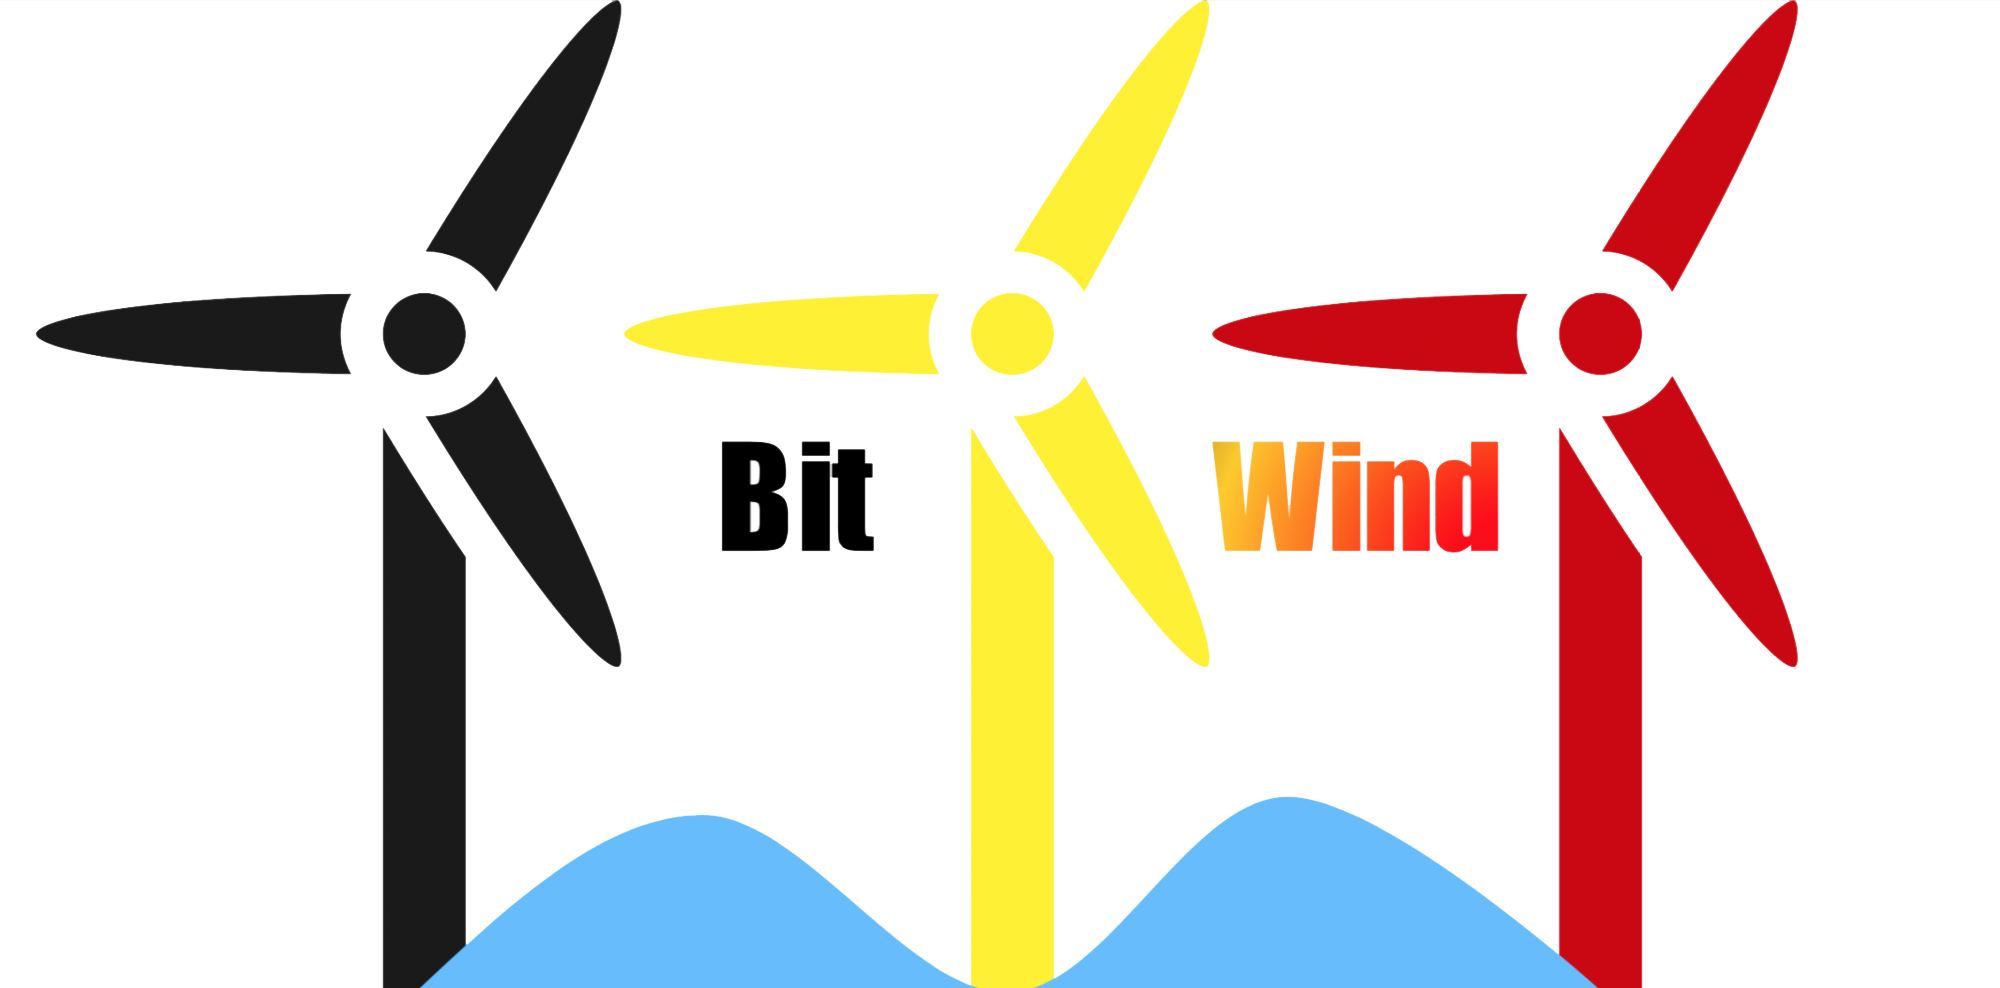 bitwind_org.png